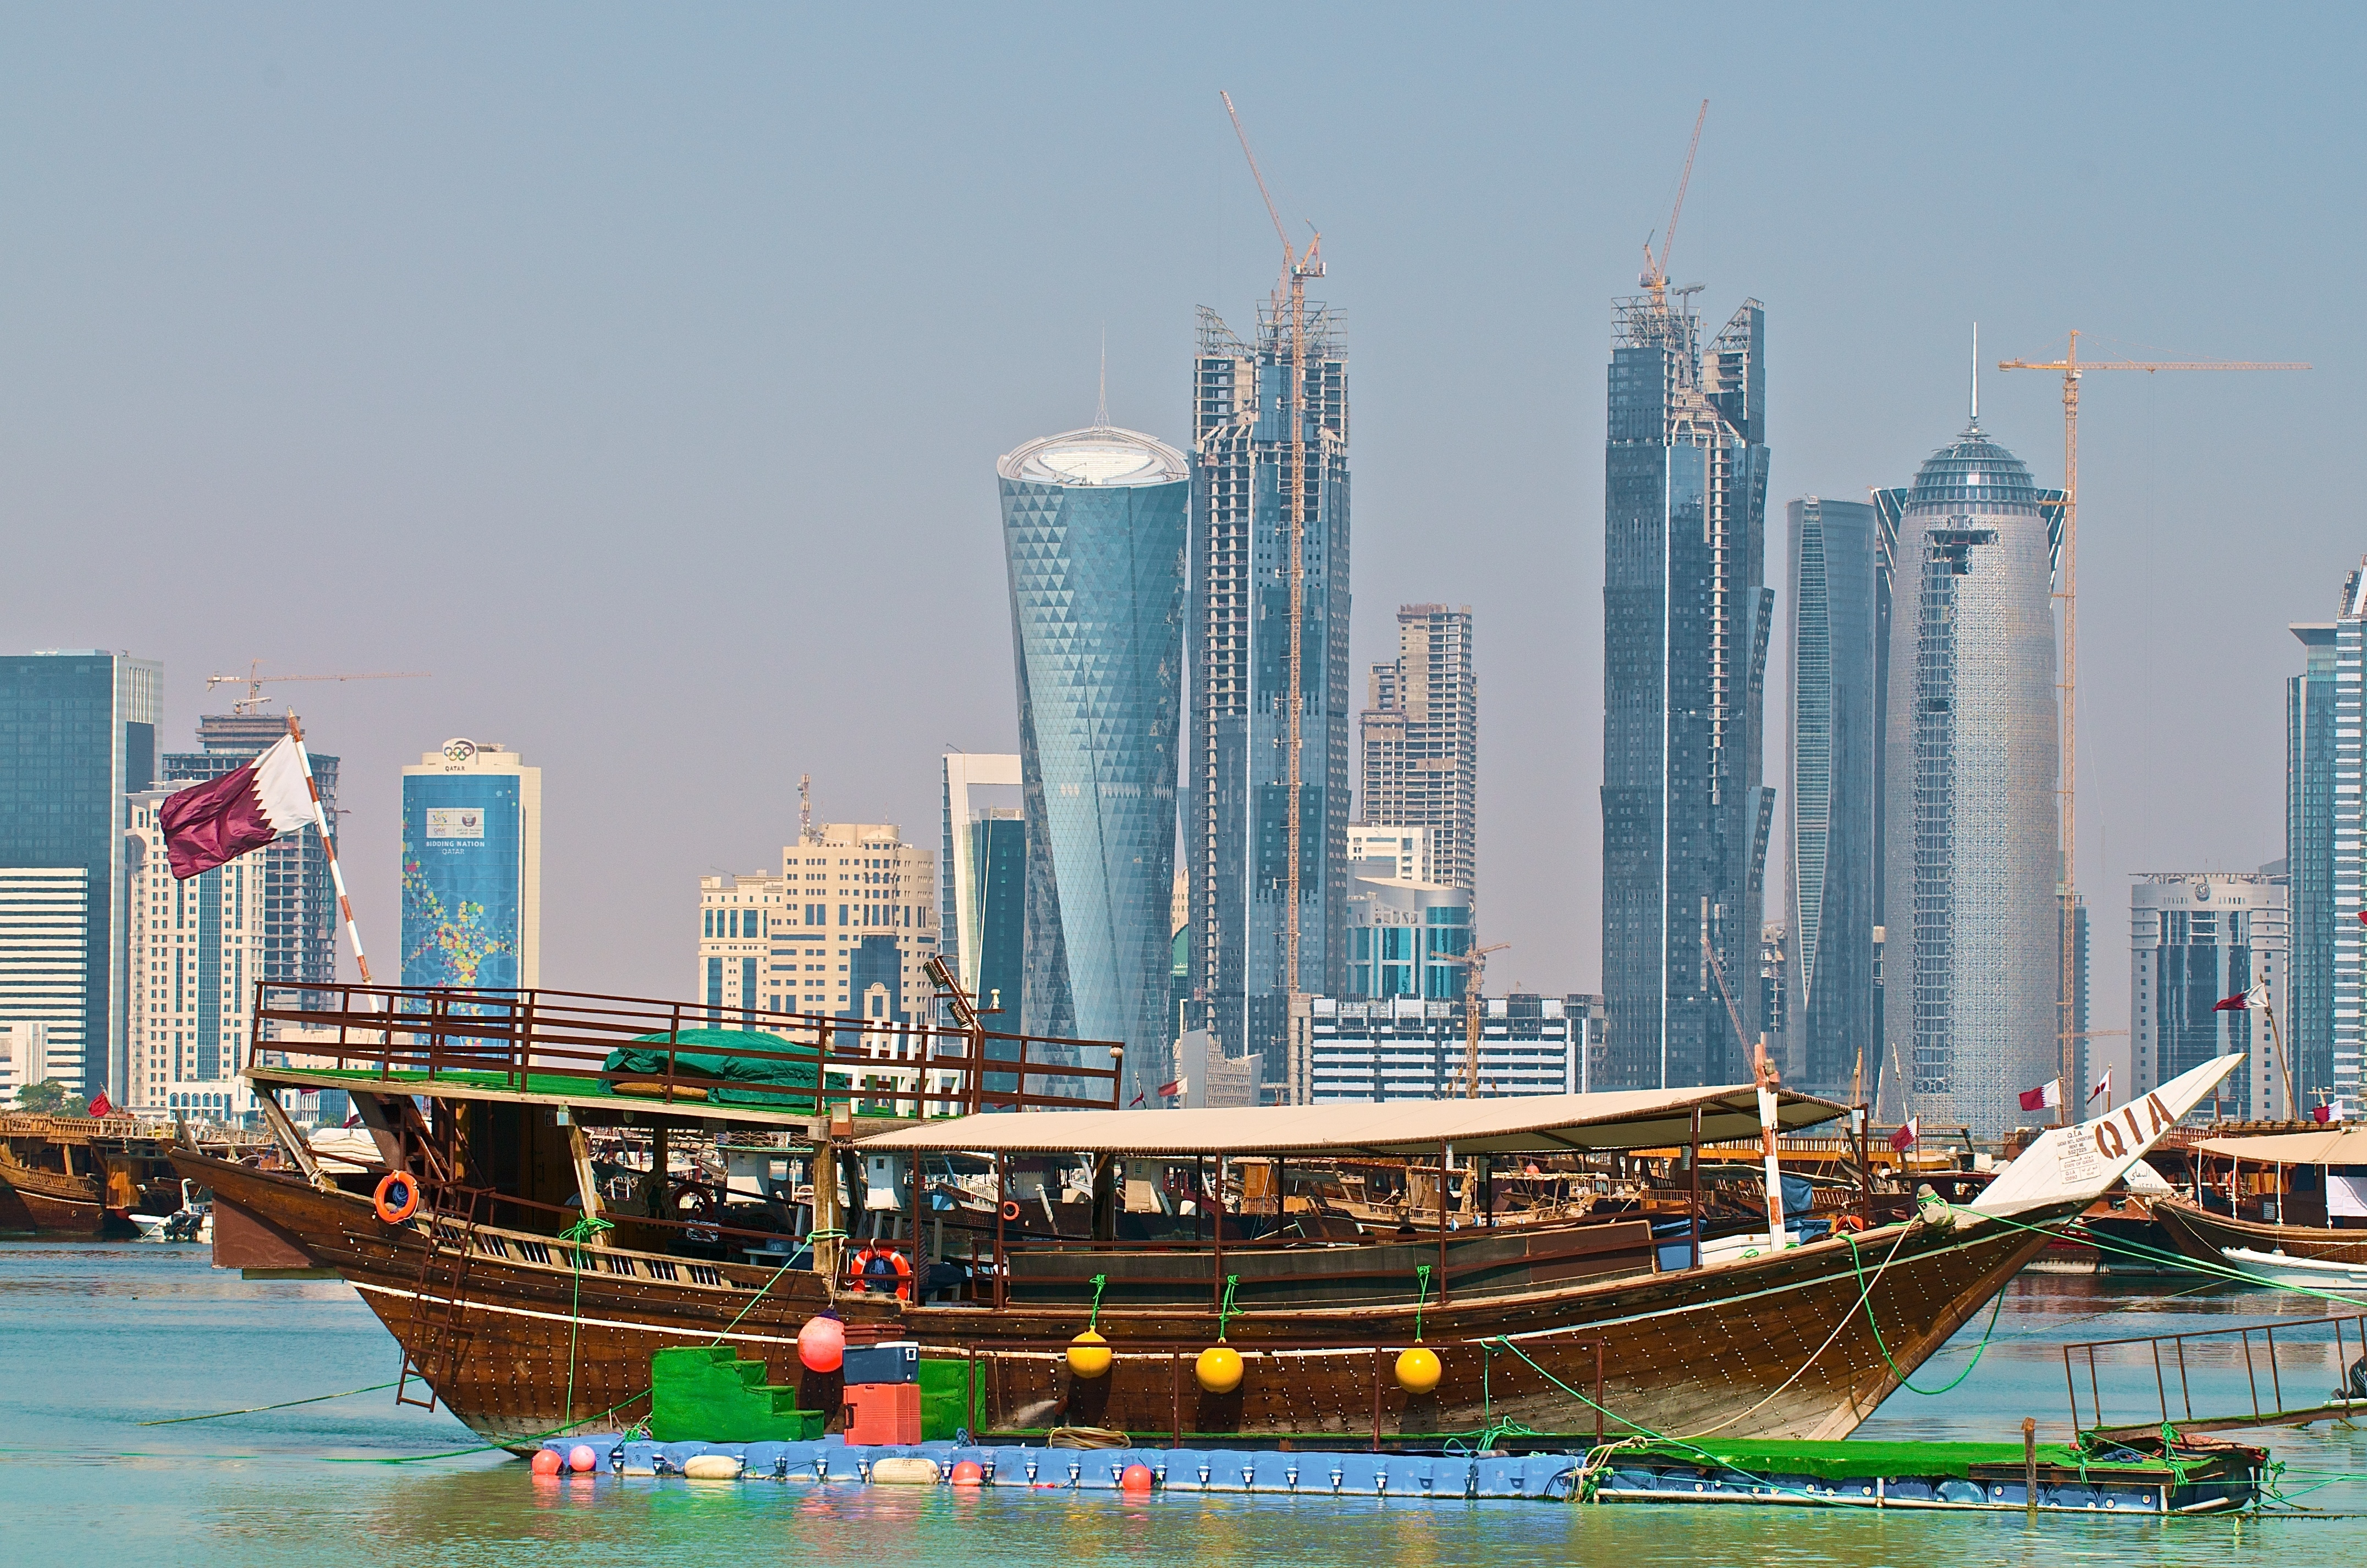 Qatar, pictured above, will be represented in Resnik House. (credit: Courtesy of Wikimedia Commons)